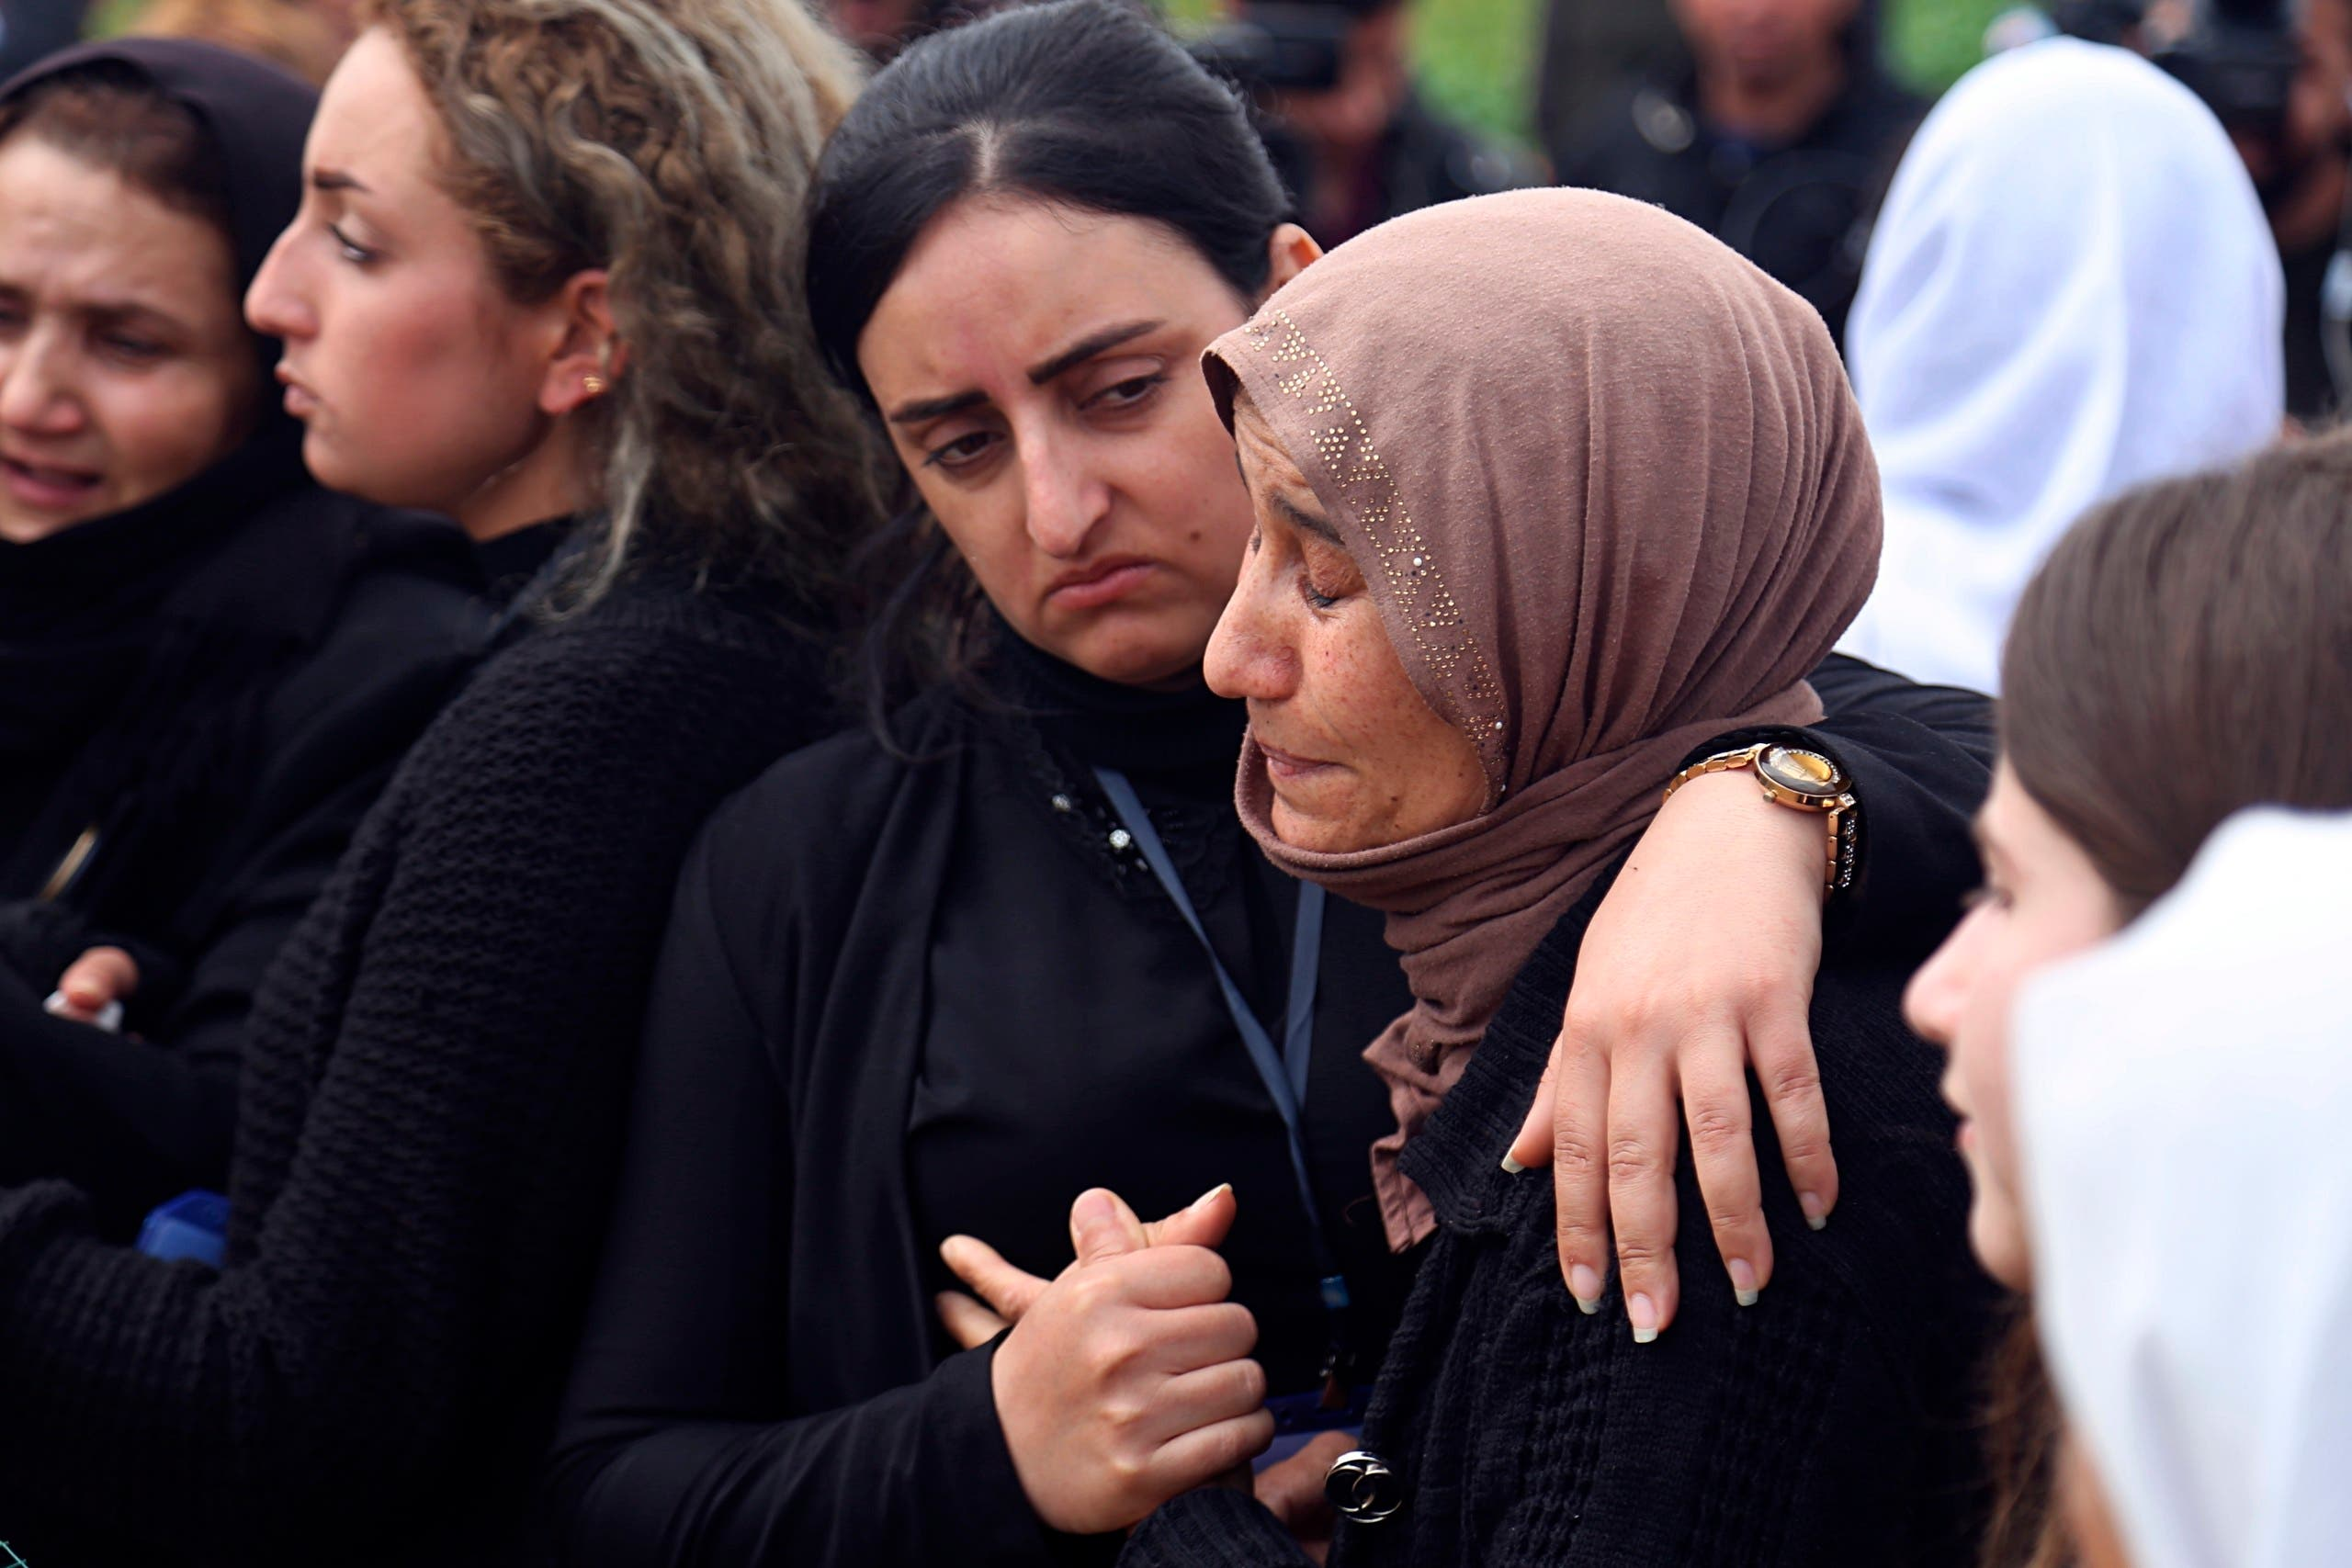 In this March 15, 2019 file photo, Iraqi Yazidi women mourn during the exhumation process of a mass grave in Iraq's northwestern region of Sinjar. (AP)